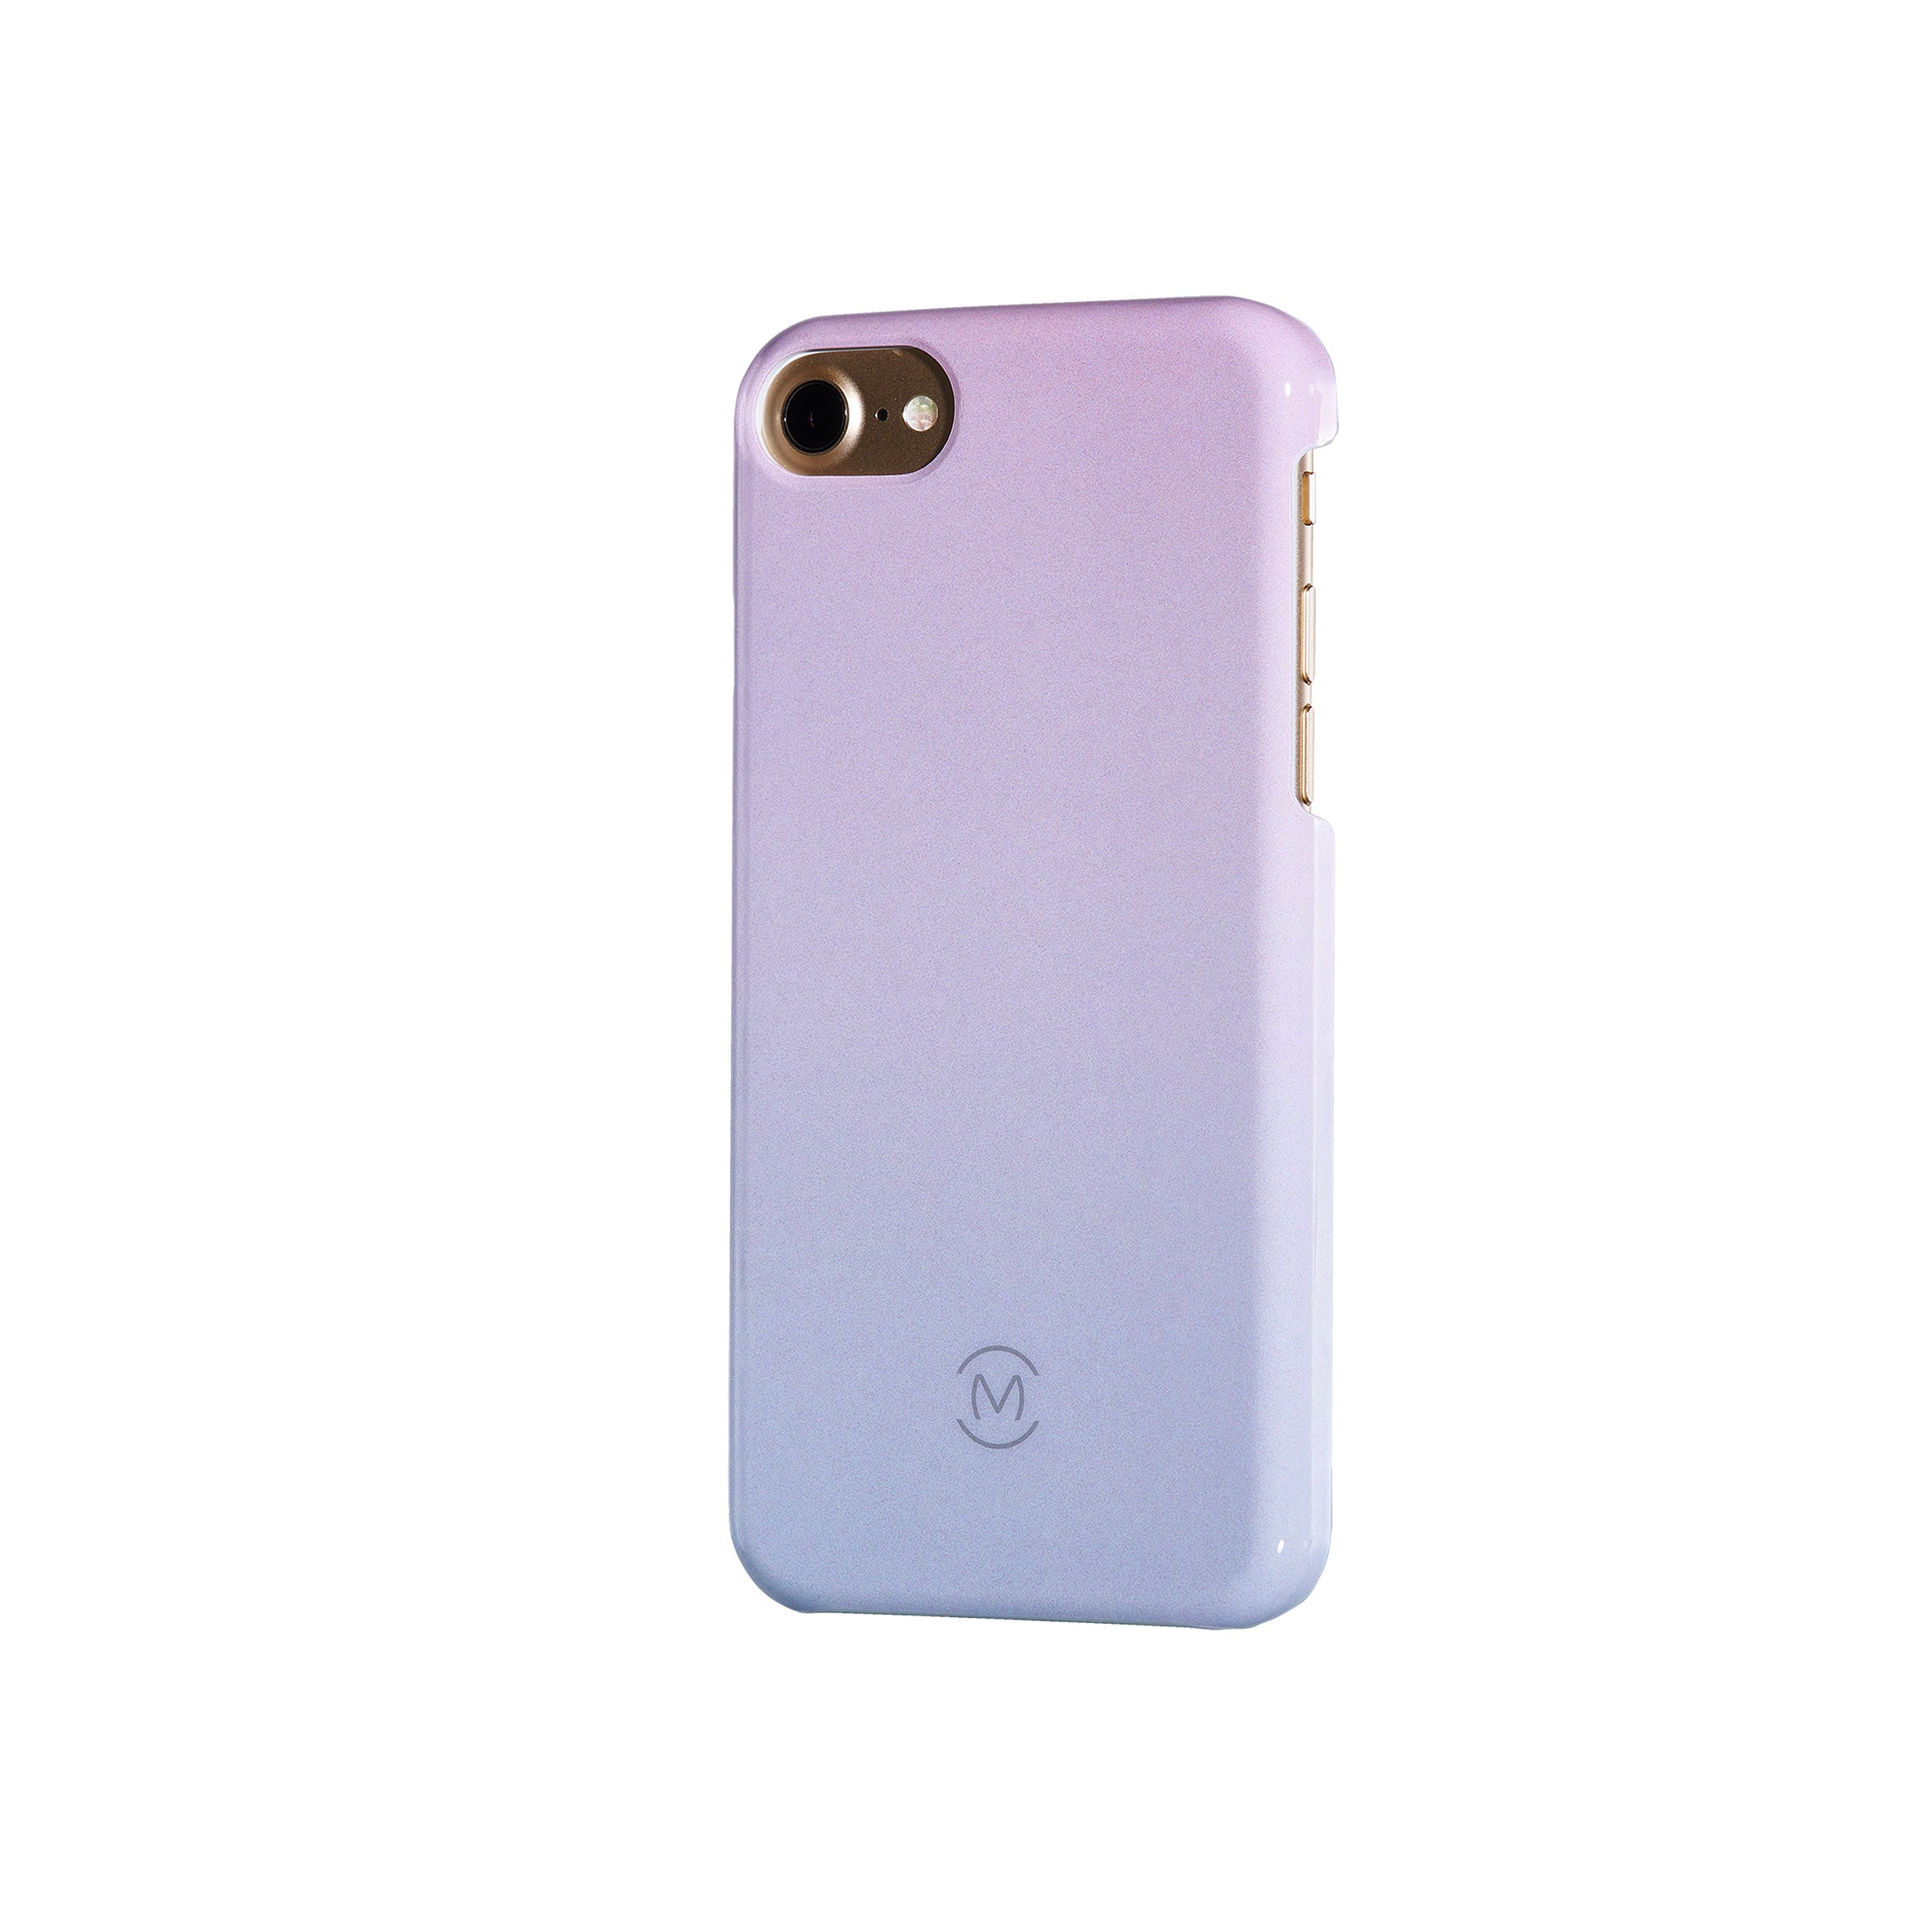 Pink-Blue Gradient Arctic Dusk Recyclable Phone Case by Movement for iPhone 8, iPhone 7, iPhone 6s, and iPhone 6 (Right)